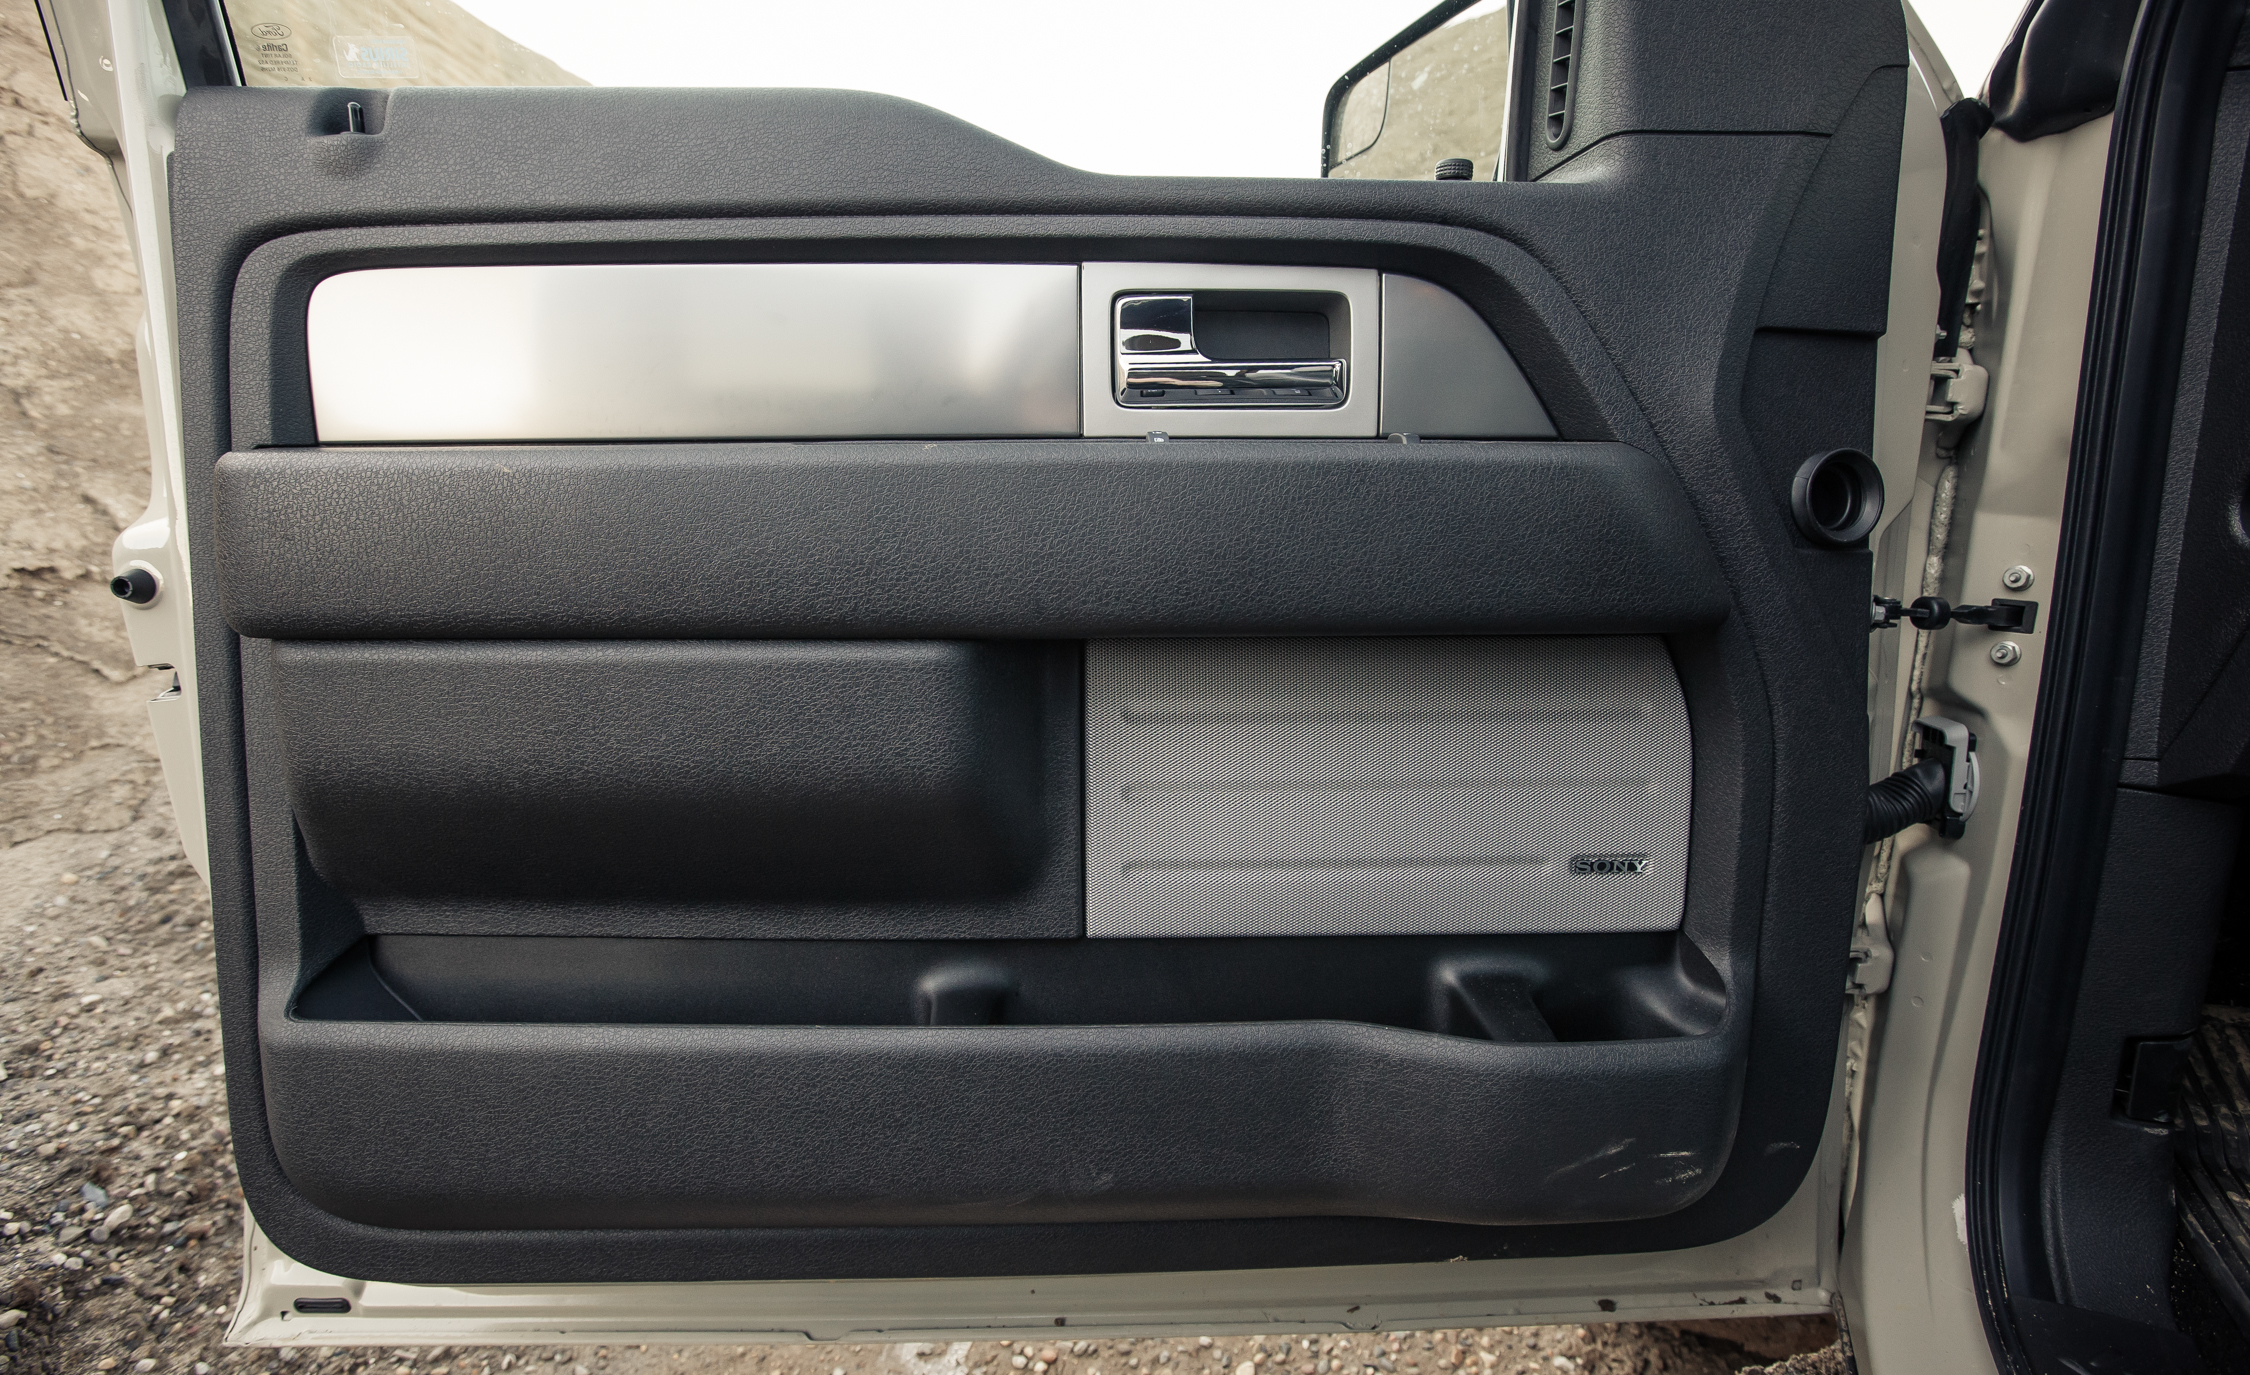 Costco Ford F150 >> F150 Door Panel & 2013 Ford F 150 SVT Raptor SuperCab Interior View Door Panel (Photo 18 Of 39